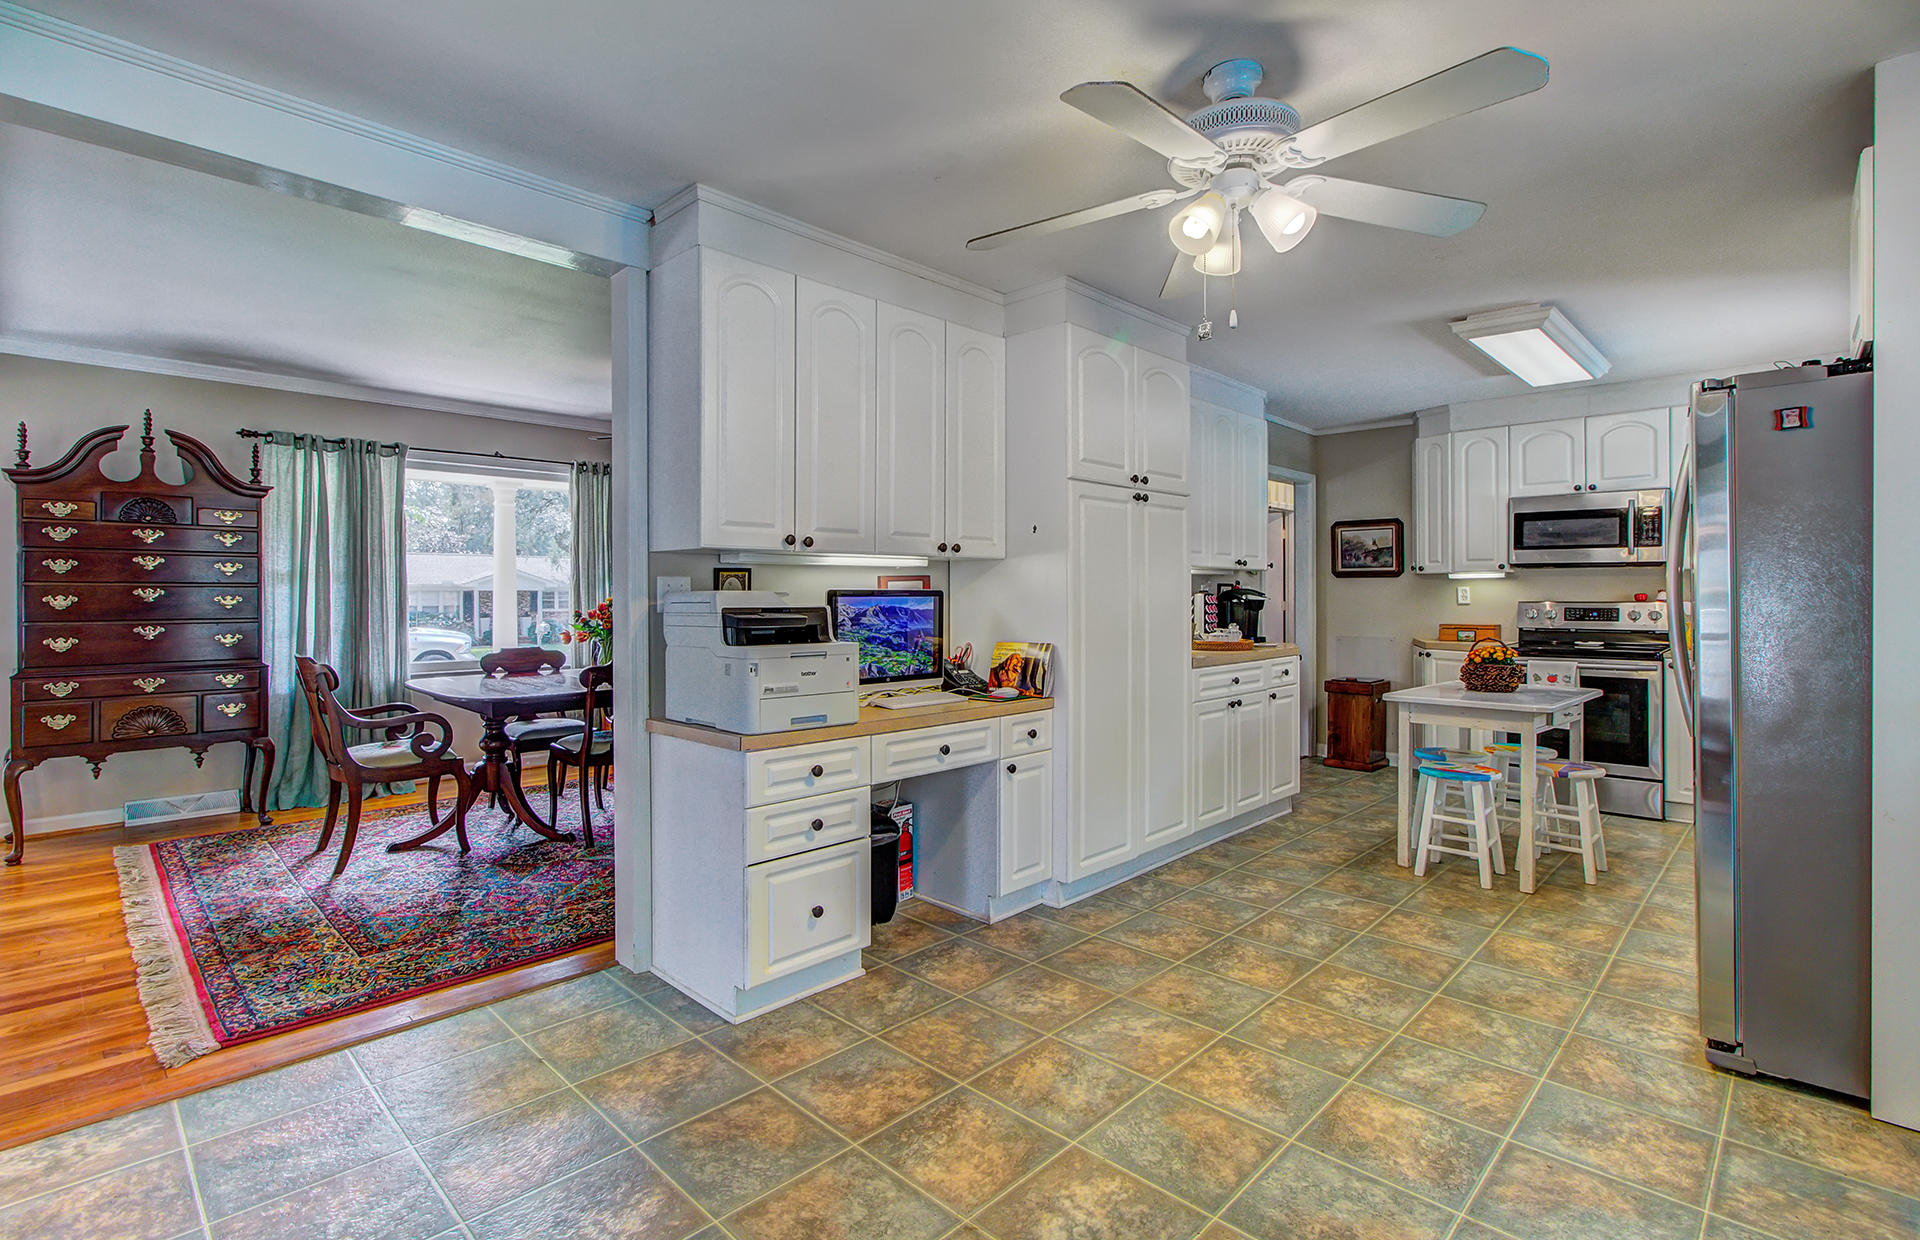 Sunset Shores Homes For Sale - 3646 Moonglow, Johns Island, SC - 27